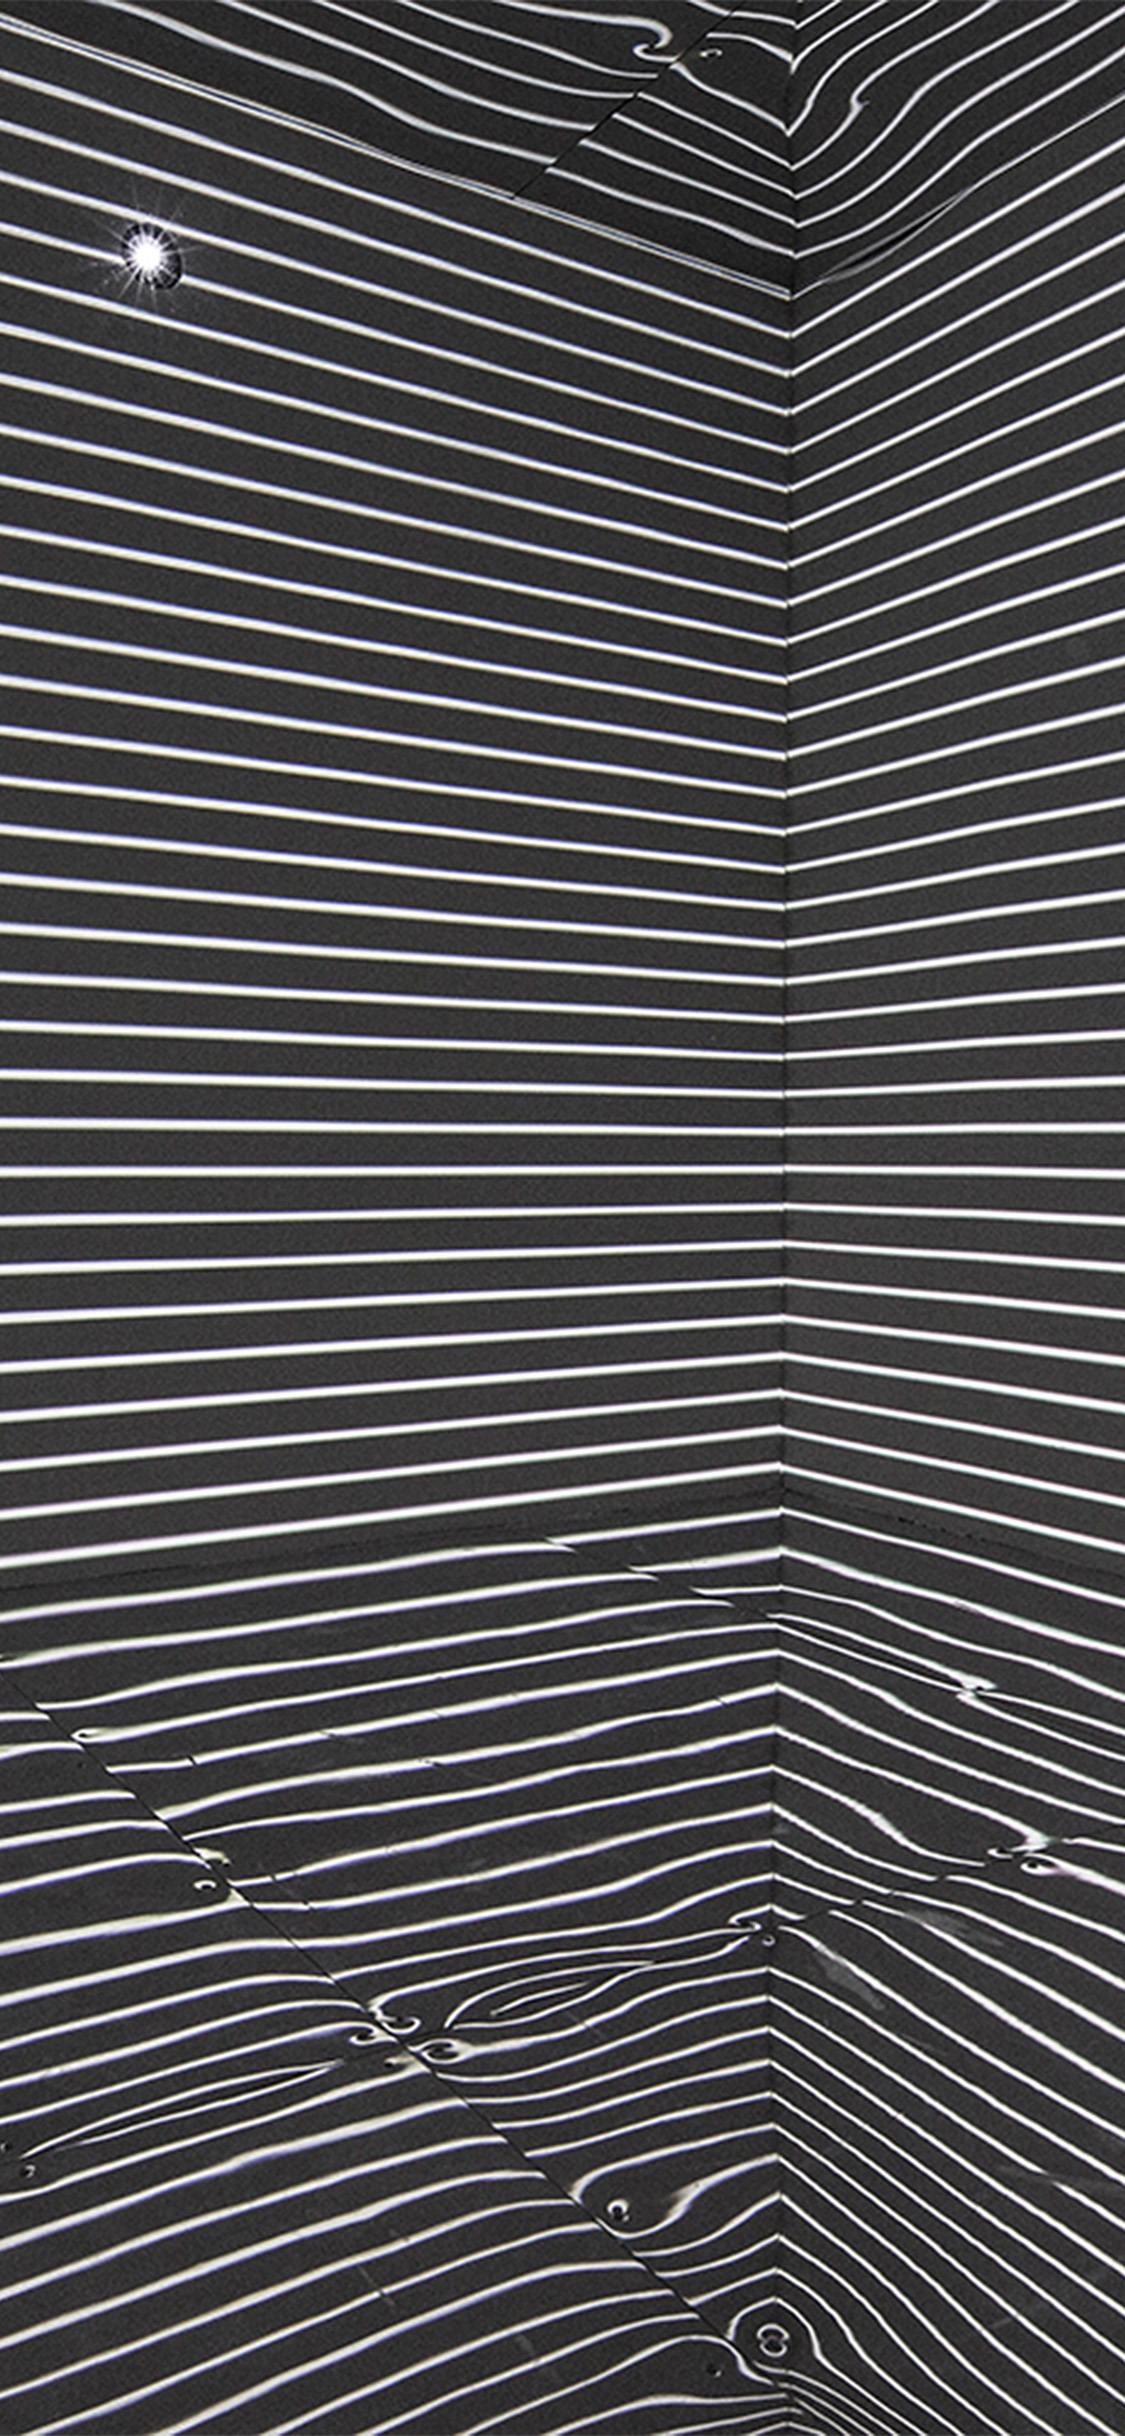 iPhonexpapers.com-Apple-iPhone-wallpaper-wa04-crazy-bw-eyecatching-pattern-background